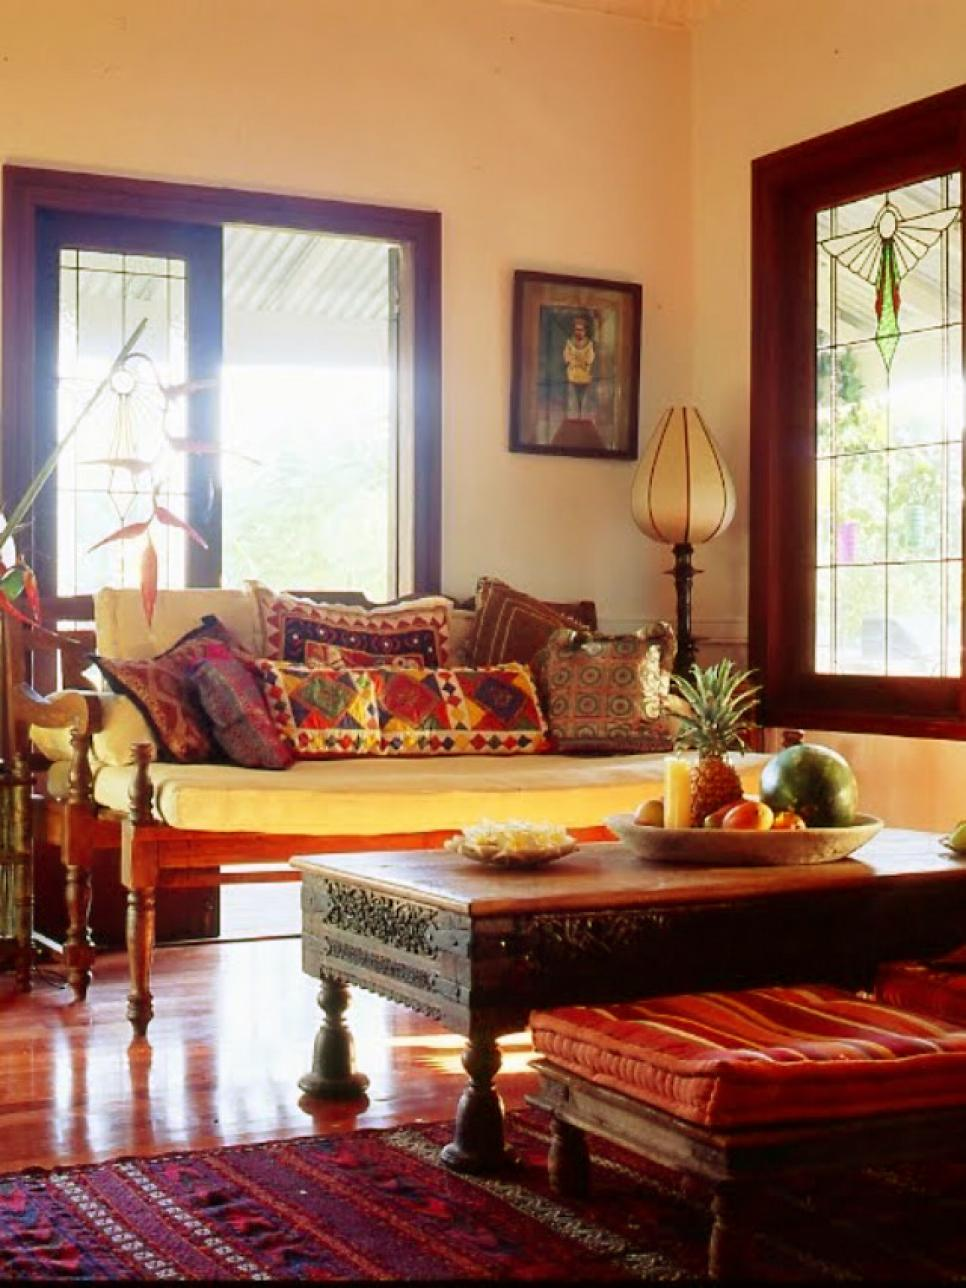 12 spaces inspired by india hgtv. Black Bedroom Furniture Sets. Home Design Ideas